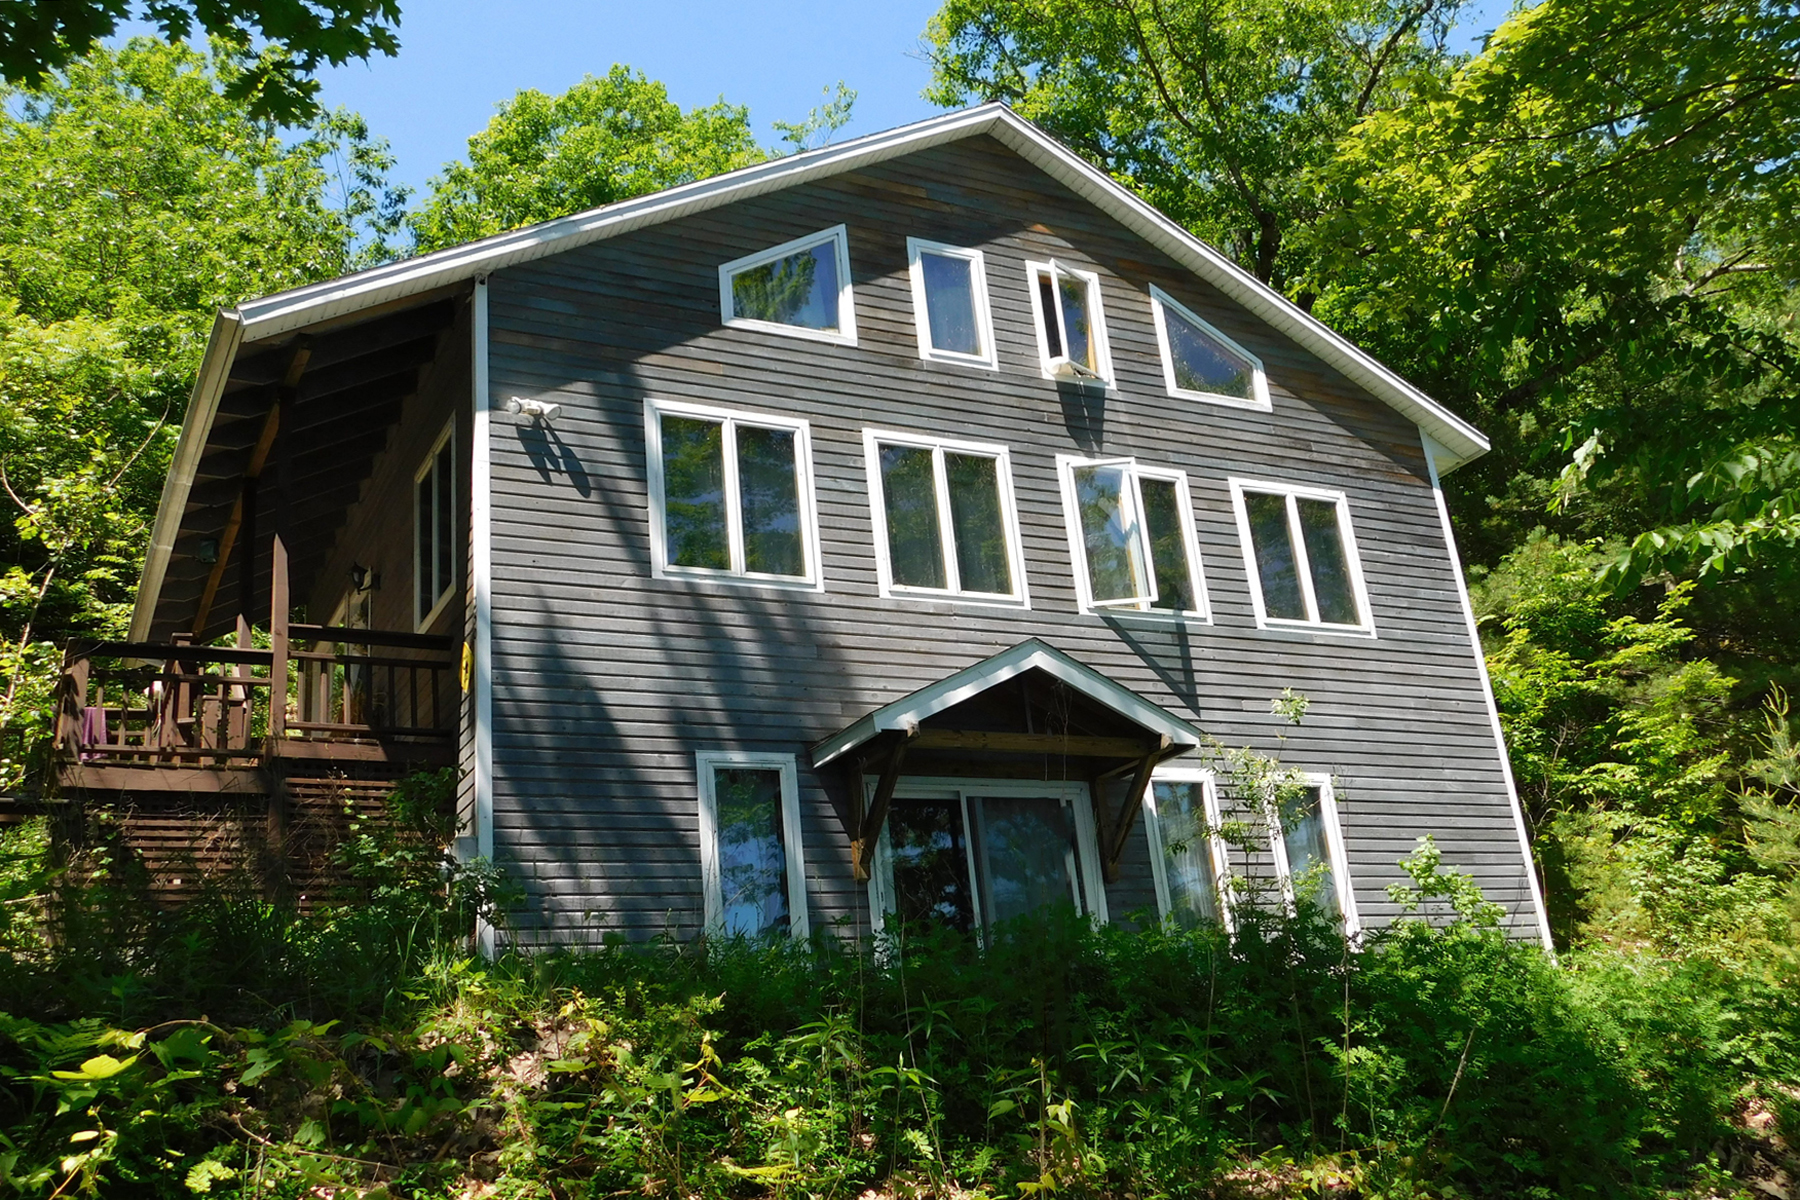 Single Family Homes for Sale at Year round lake living at it's best! 250 Spooner Point Extension Castleton, Vermont 05735 United States